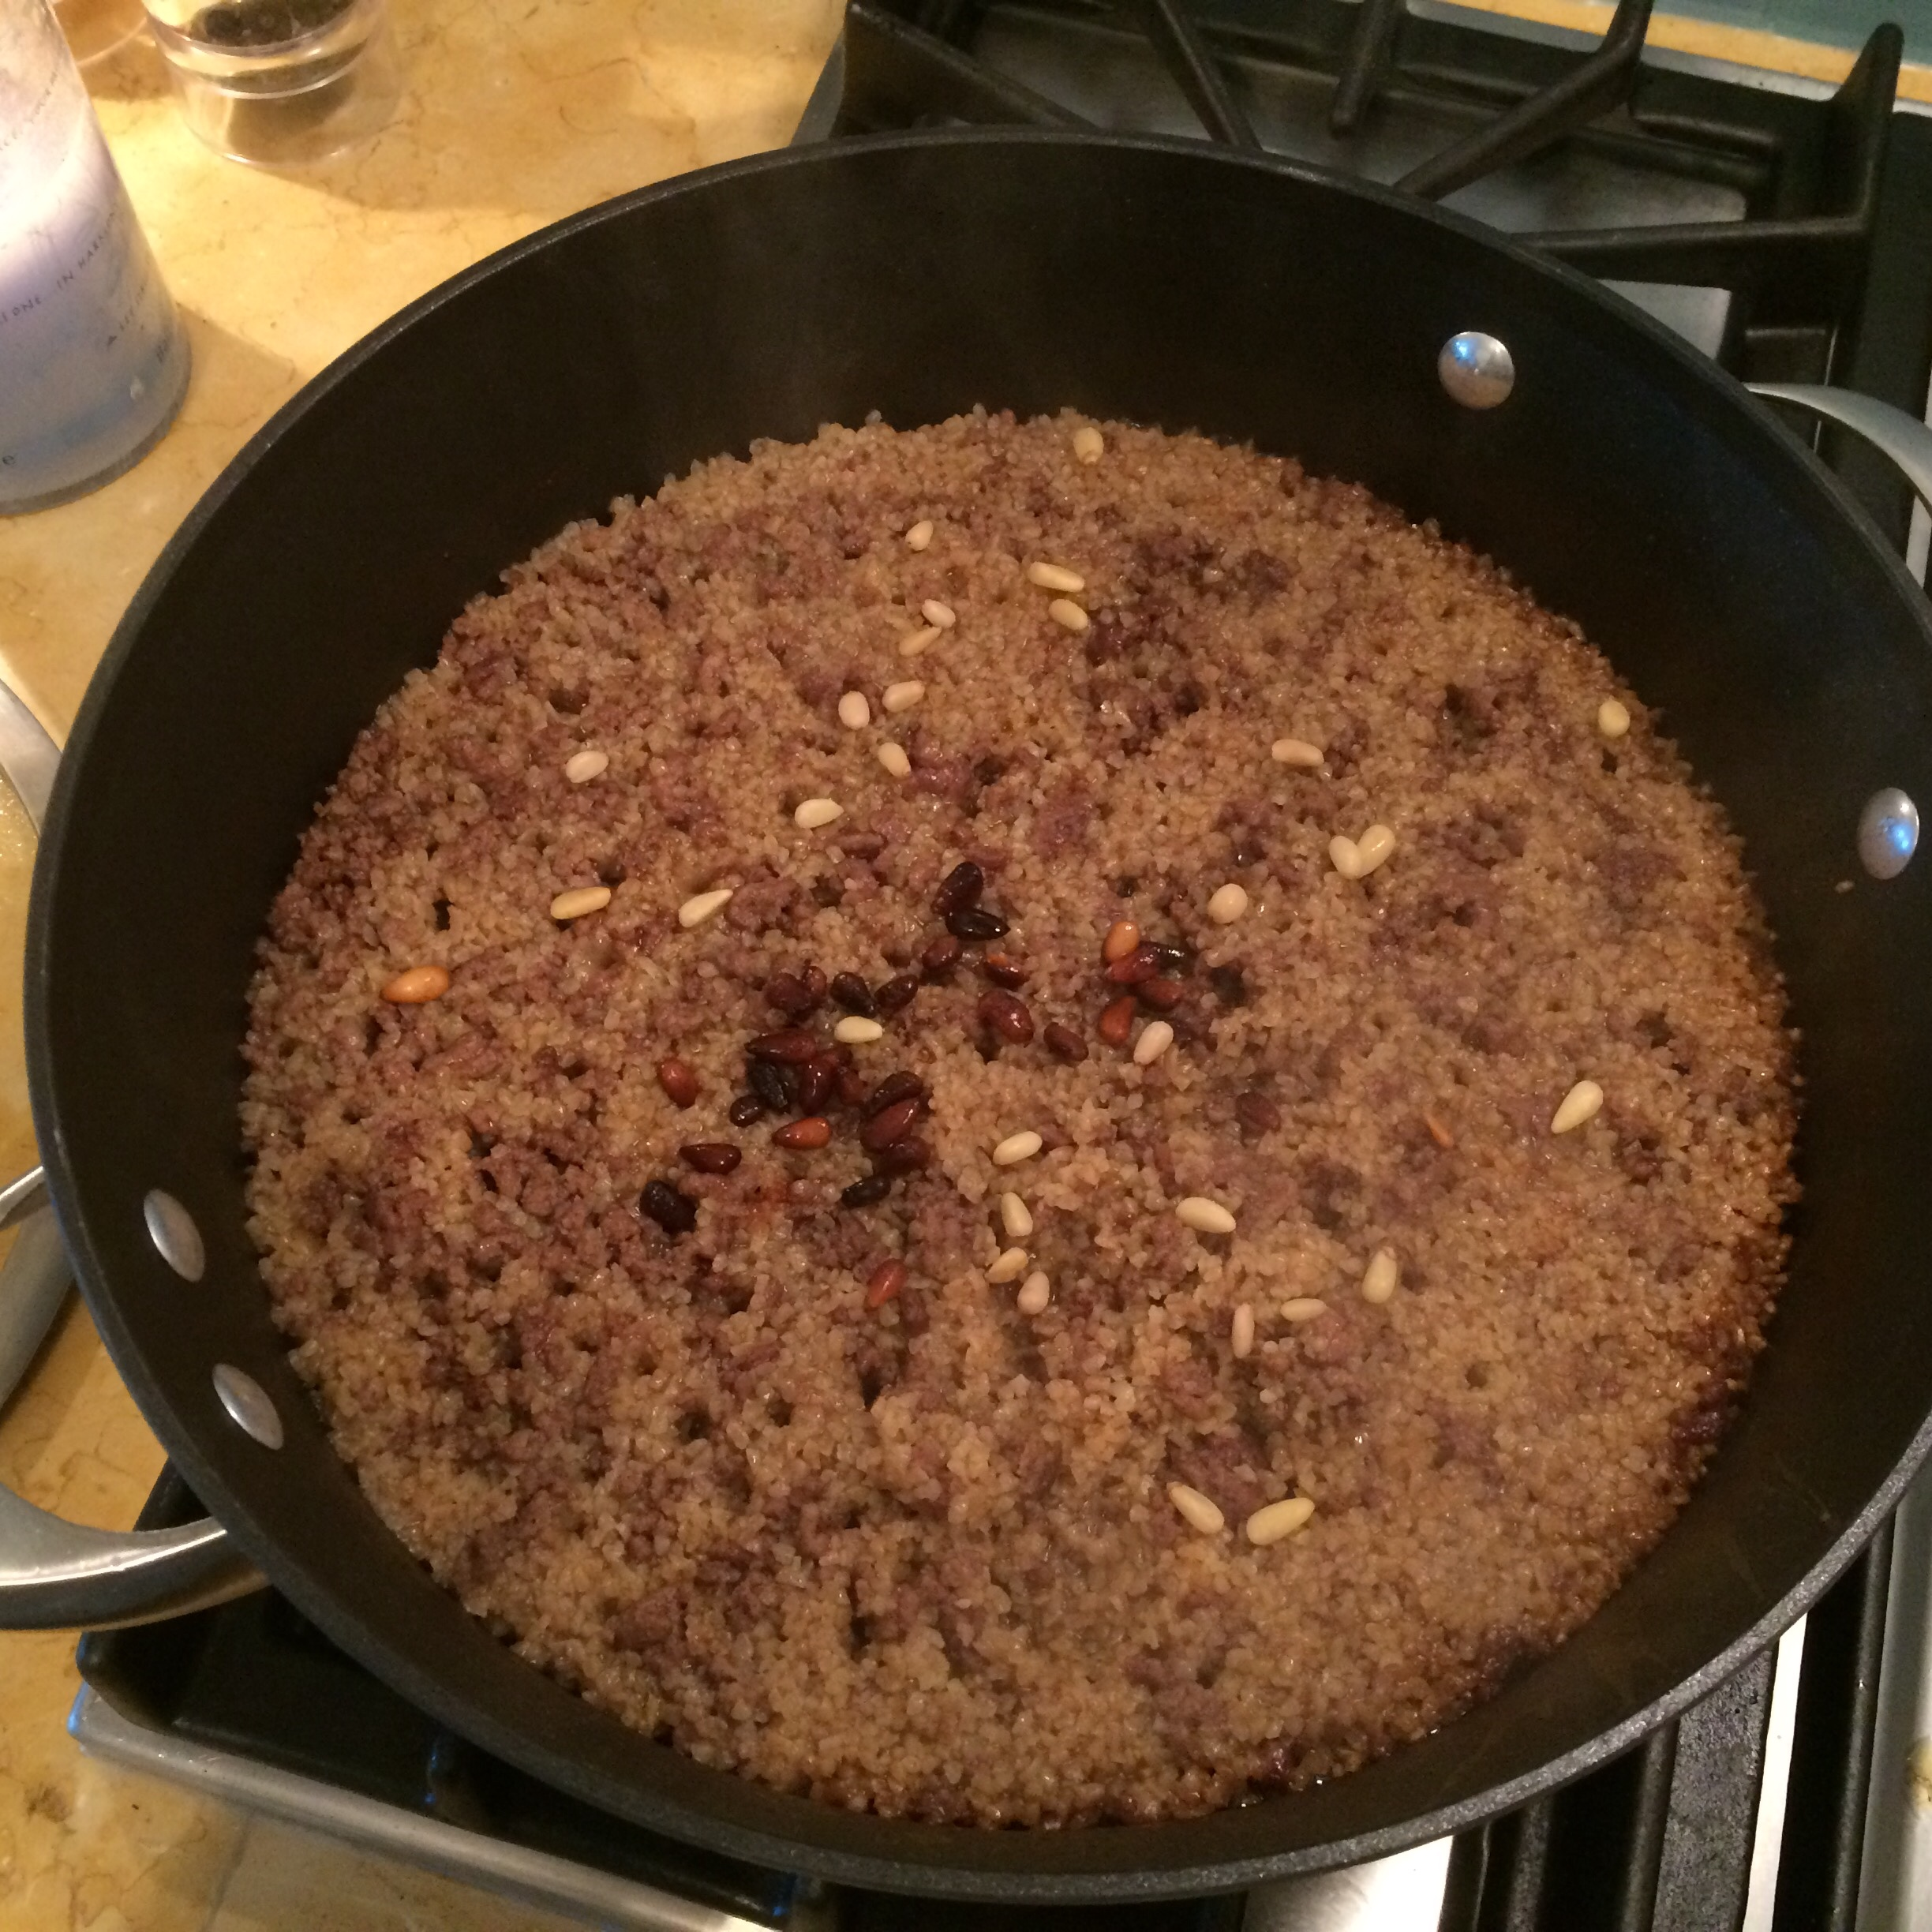 Lamb and Bulgar stuffing